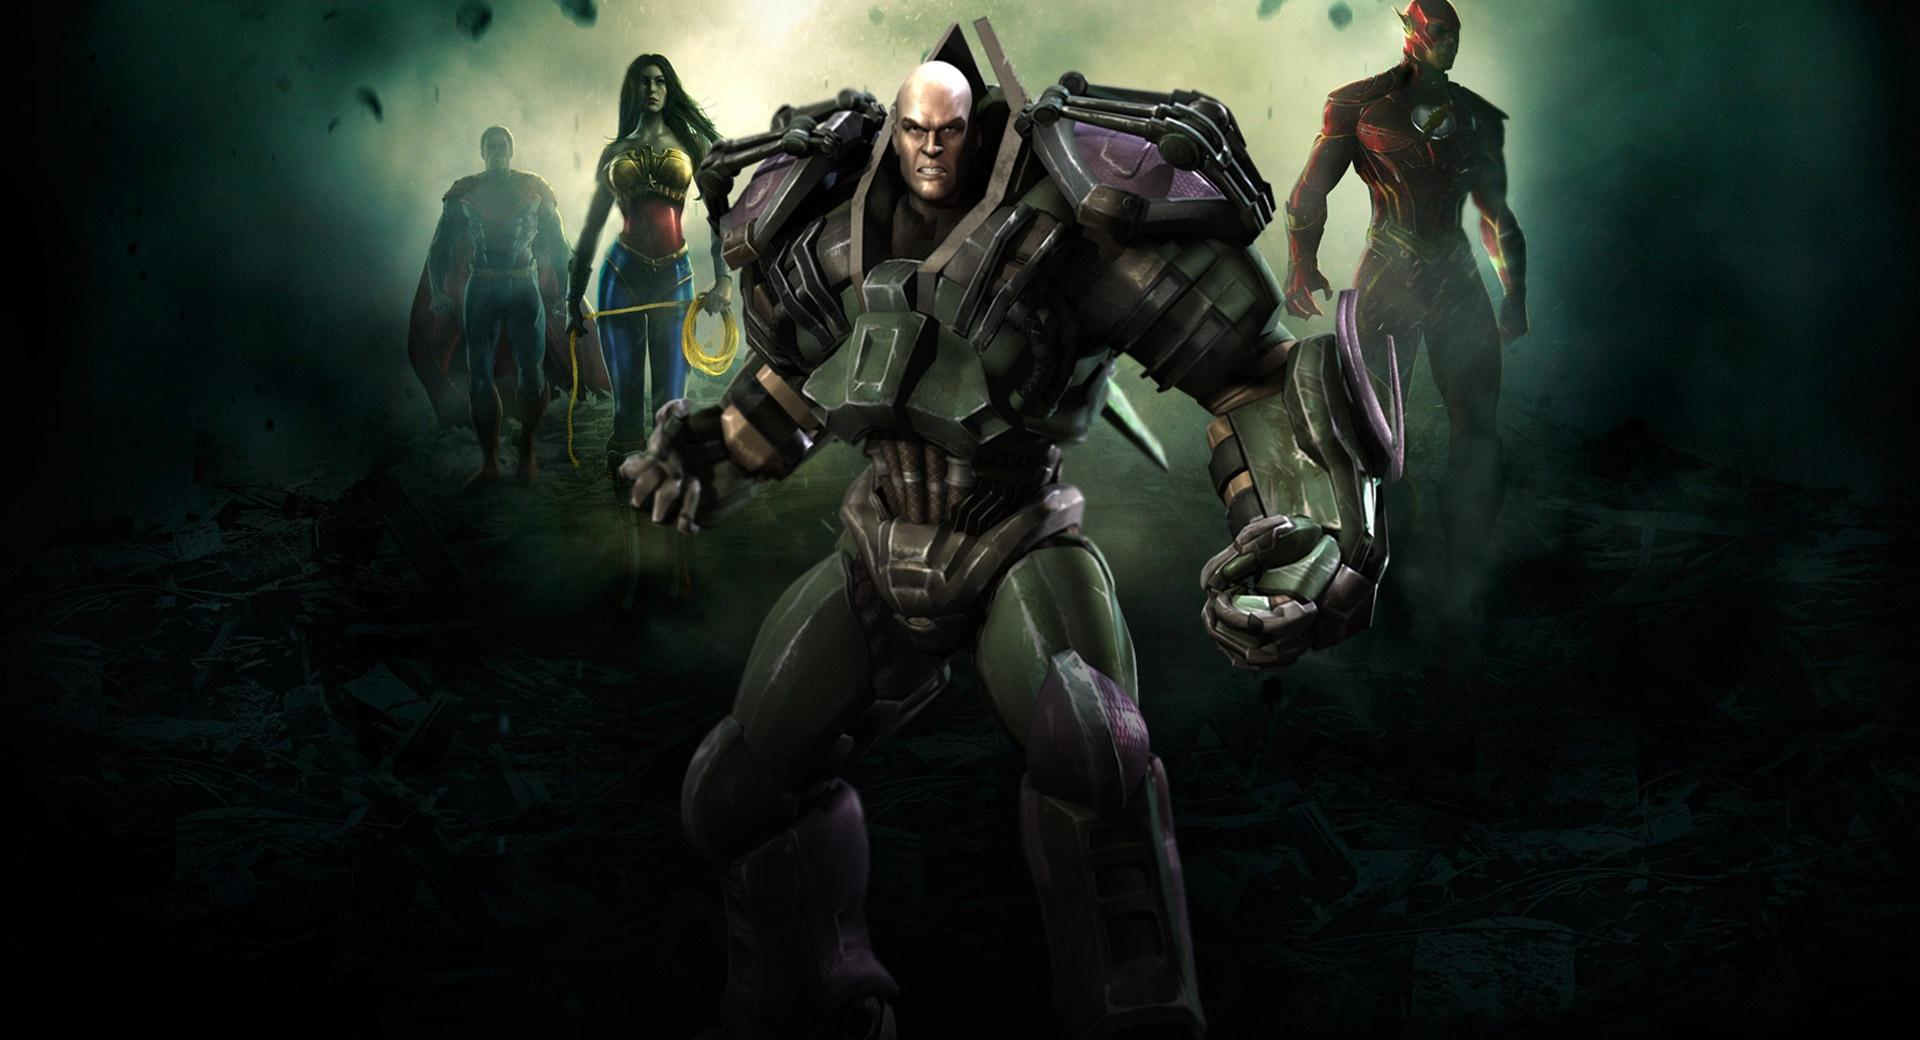 Injustice Gods Among Us - Lex Luthor wallpapers HD quality